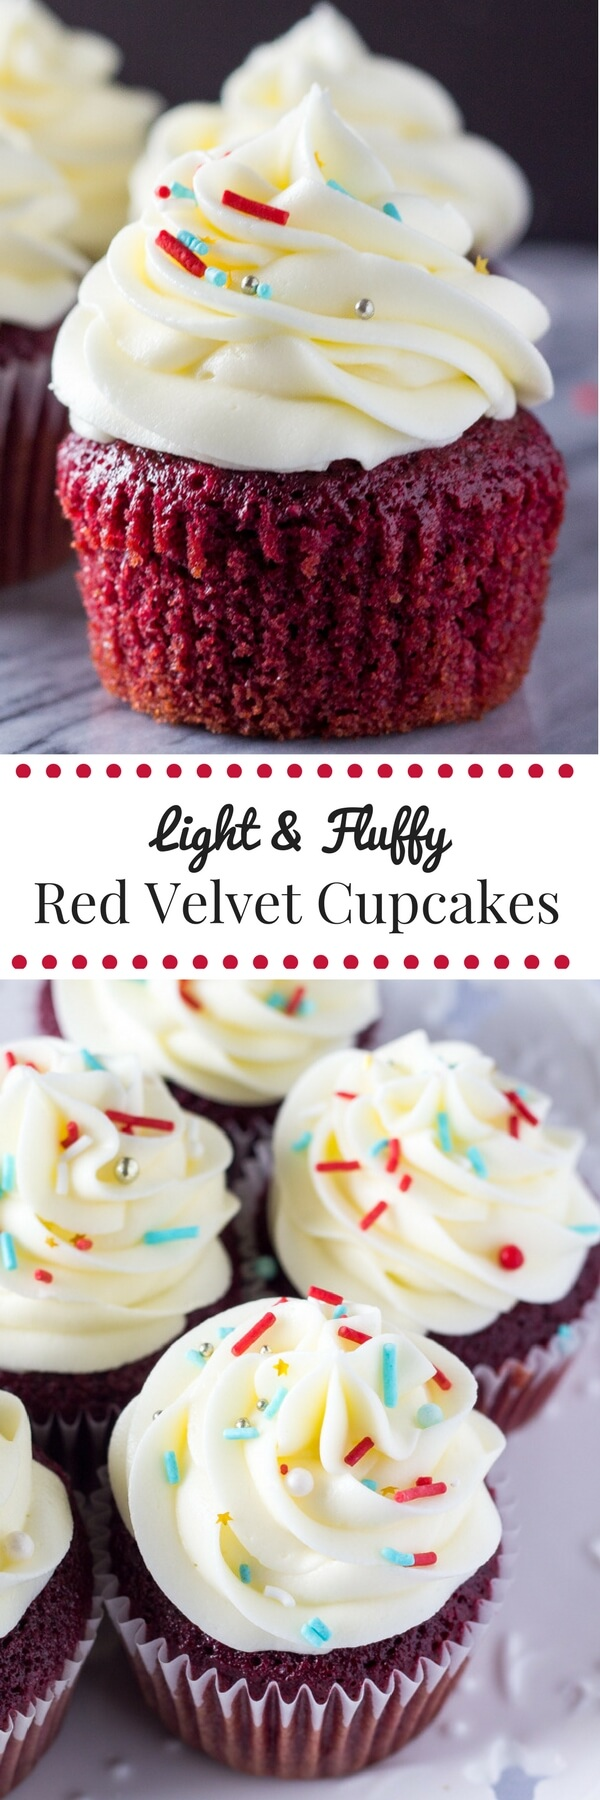 Light & fluffy, perfectly moist Red Velvet Cupcakes topped with tangy cream cheese frosting. The only red velvet recipe you need!